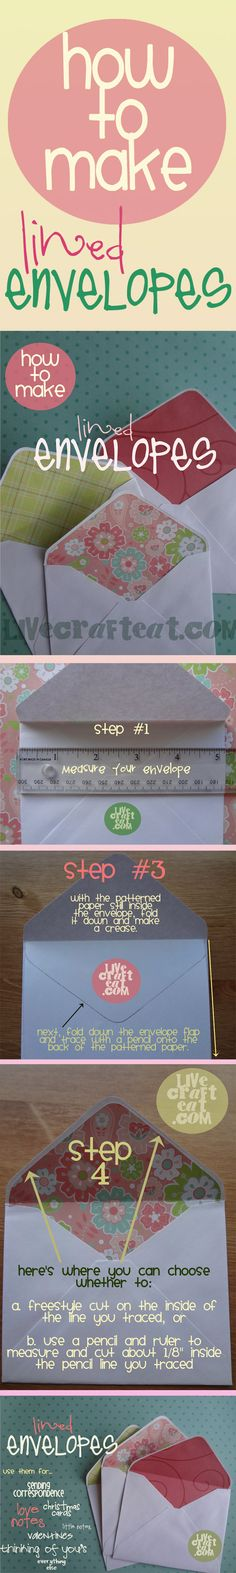 how to make lined envelopes - the easy way! tutorial | www.livecrafteat.com